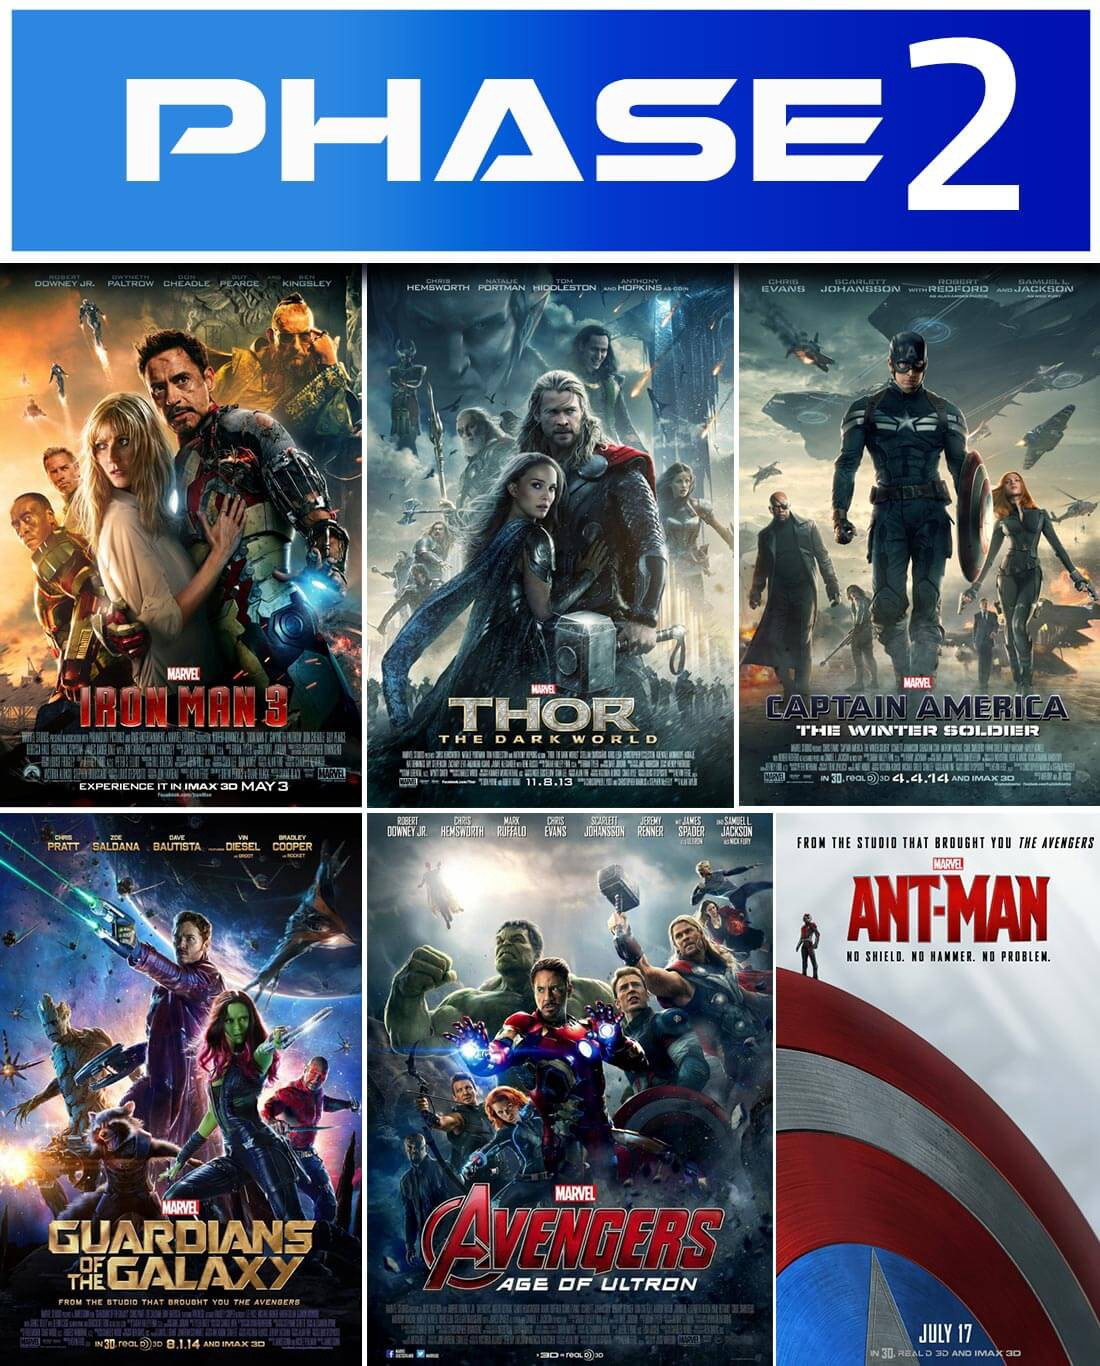 The Visual Guide to the Marvel Cinematic Universe : Phase 2